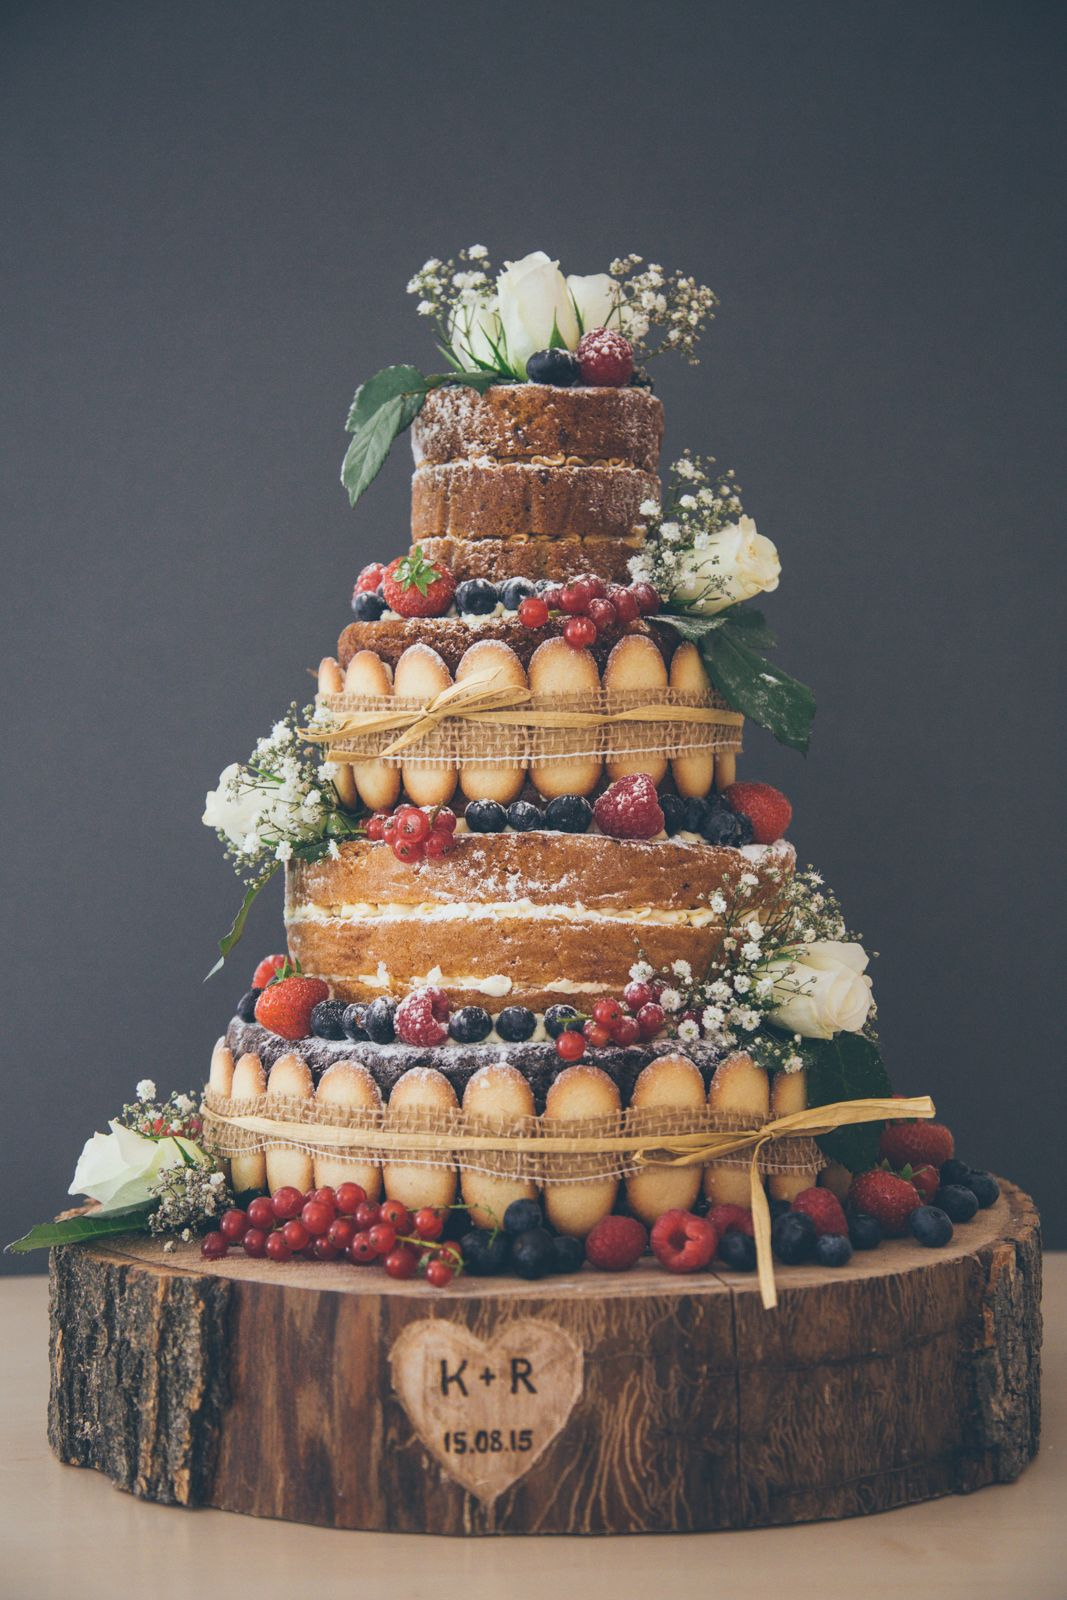 unfrosted wedding cake six wedding cake ideas wedding cake layering and cake 21414